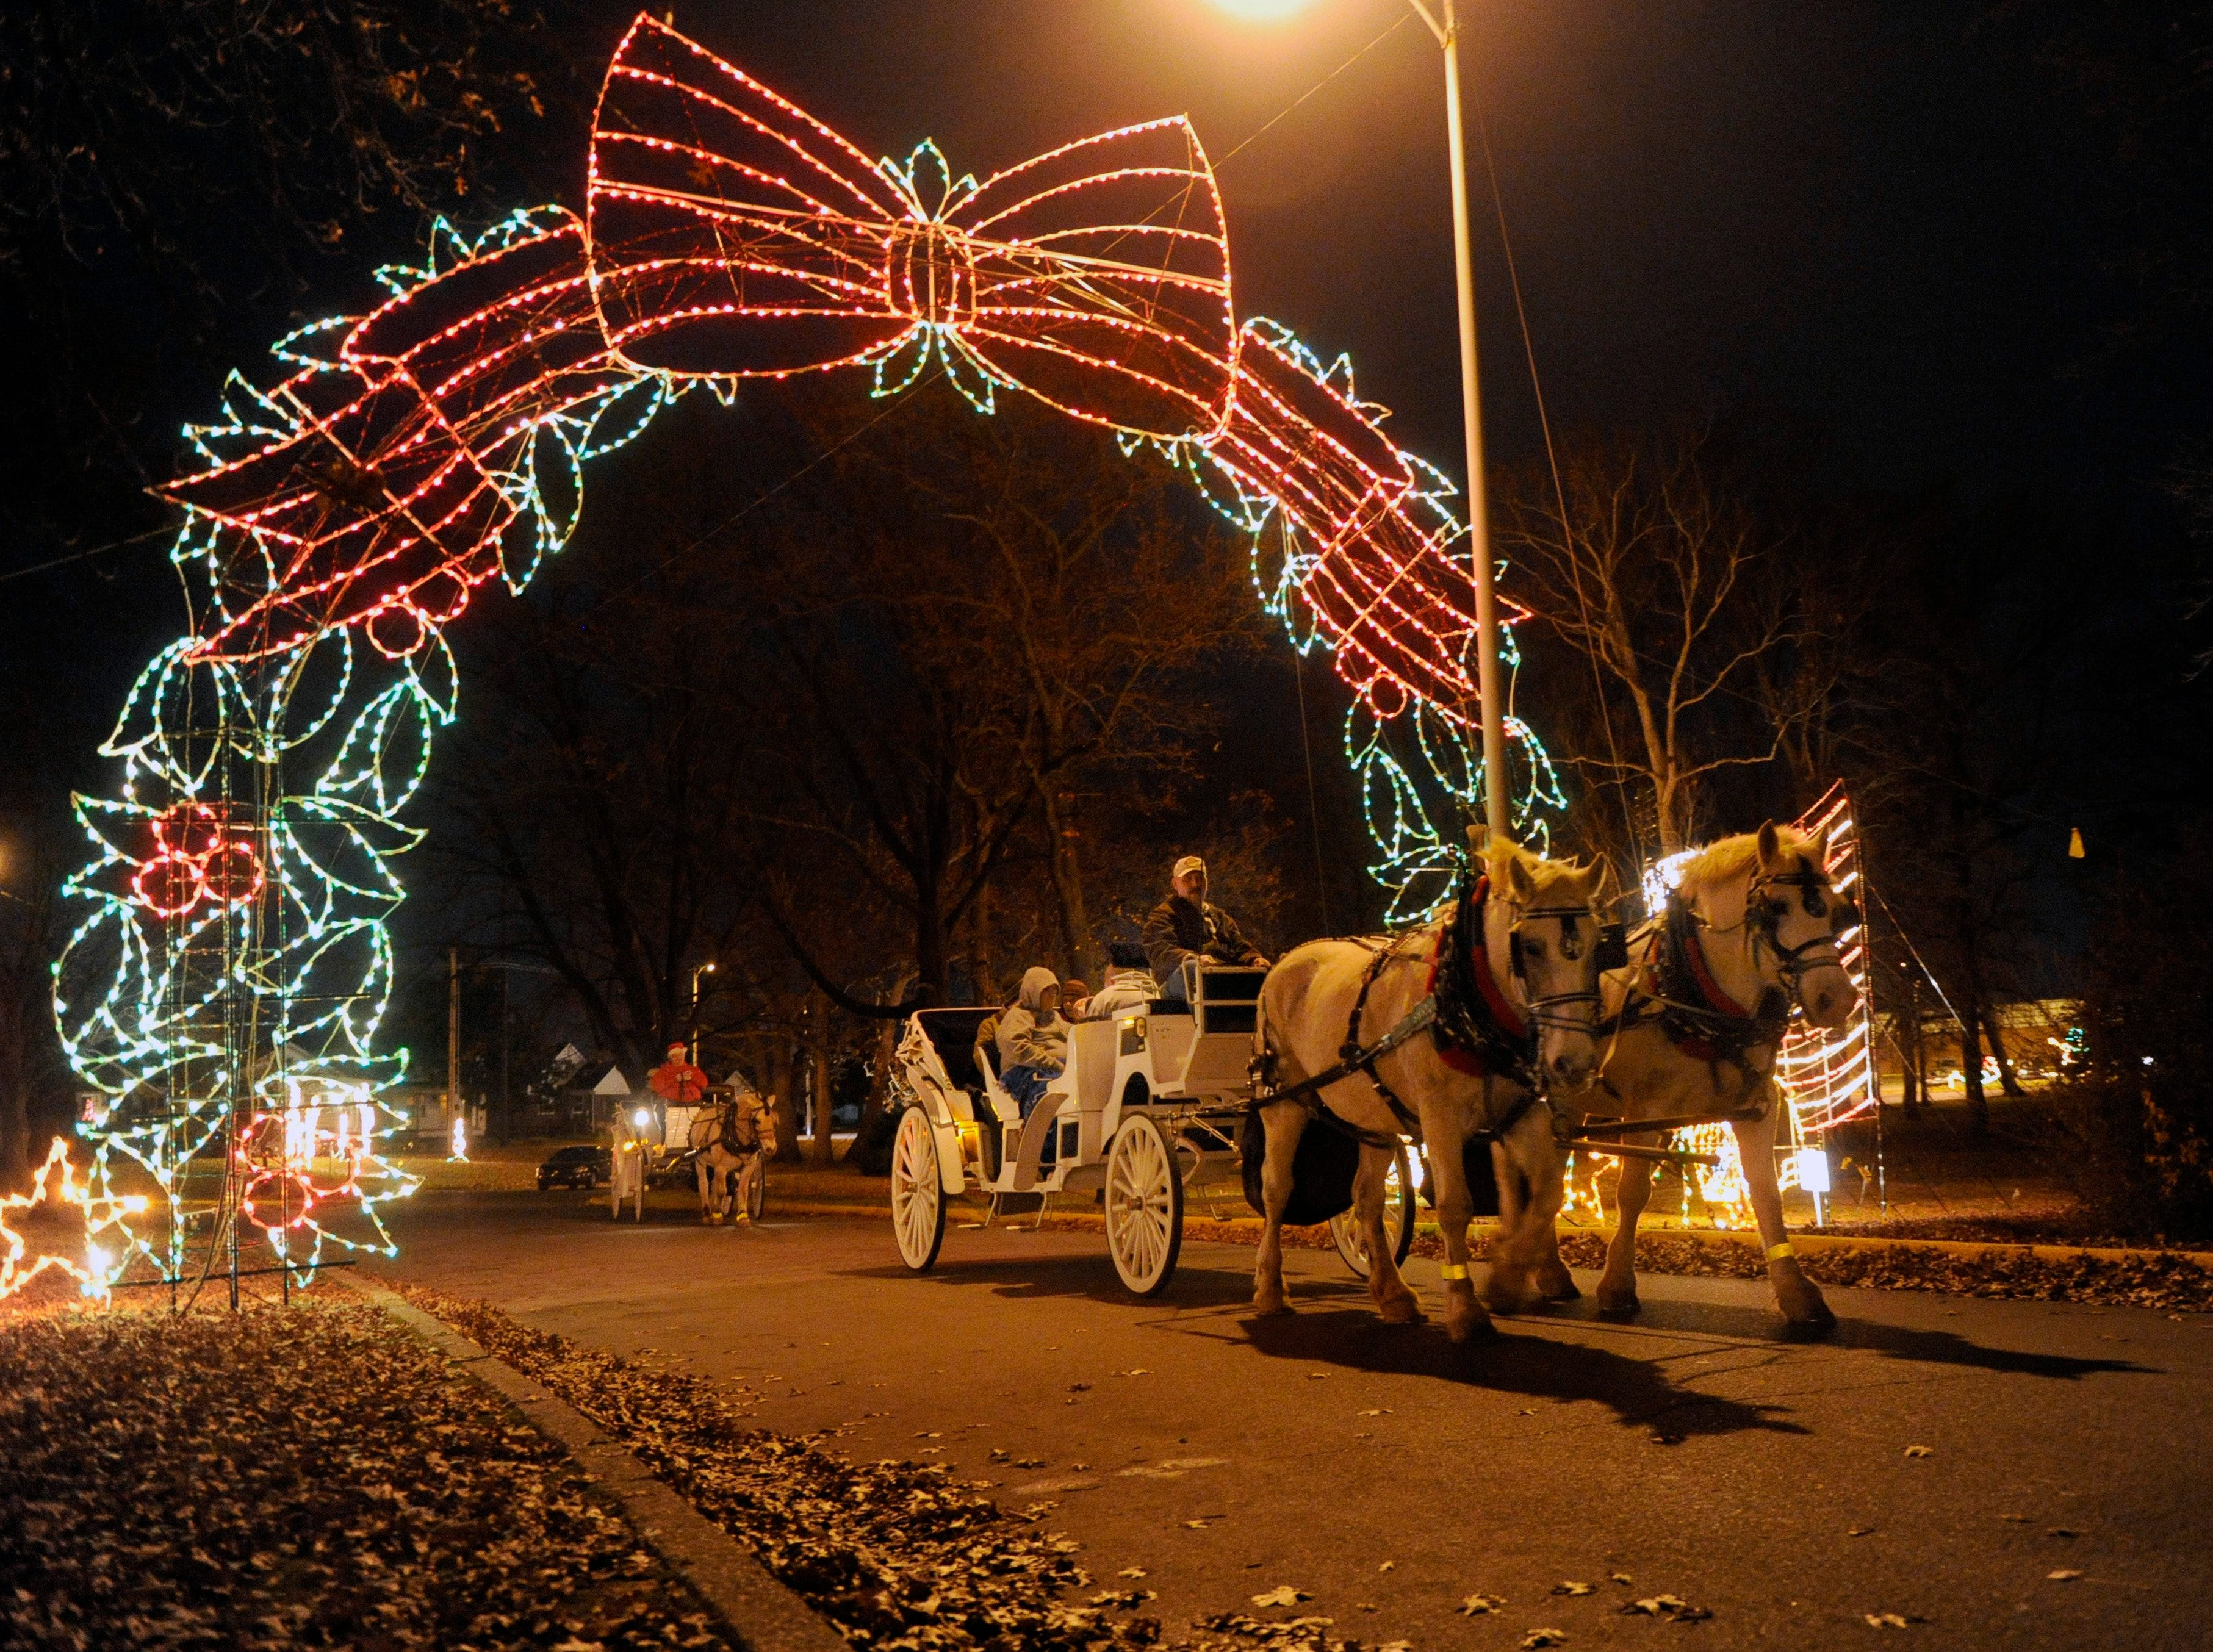 Families take a ride in a horse drawn carriage as they view the Fantasy of Lights show at Garvin Park in Evansville, Thursday evening, November 22, 2012. Carriage rides are available for $30, including a wheelchair accessible carriage if needed.